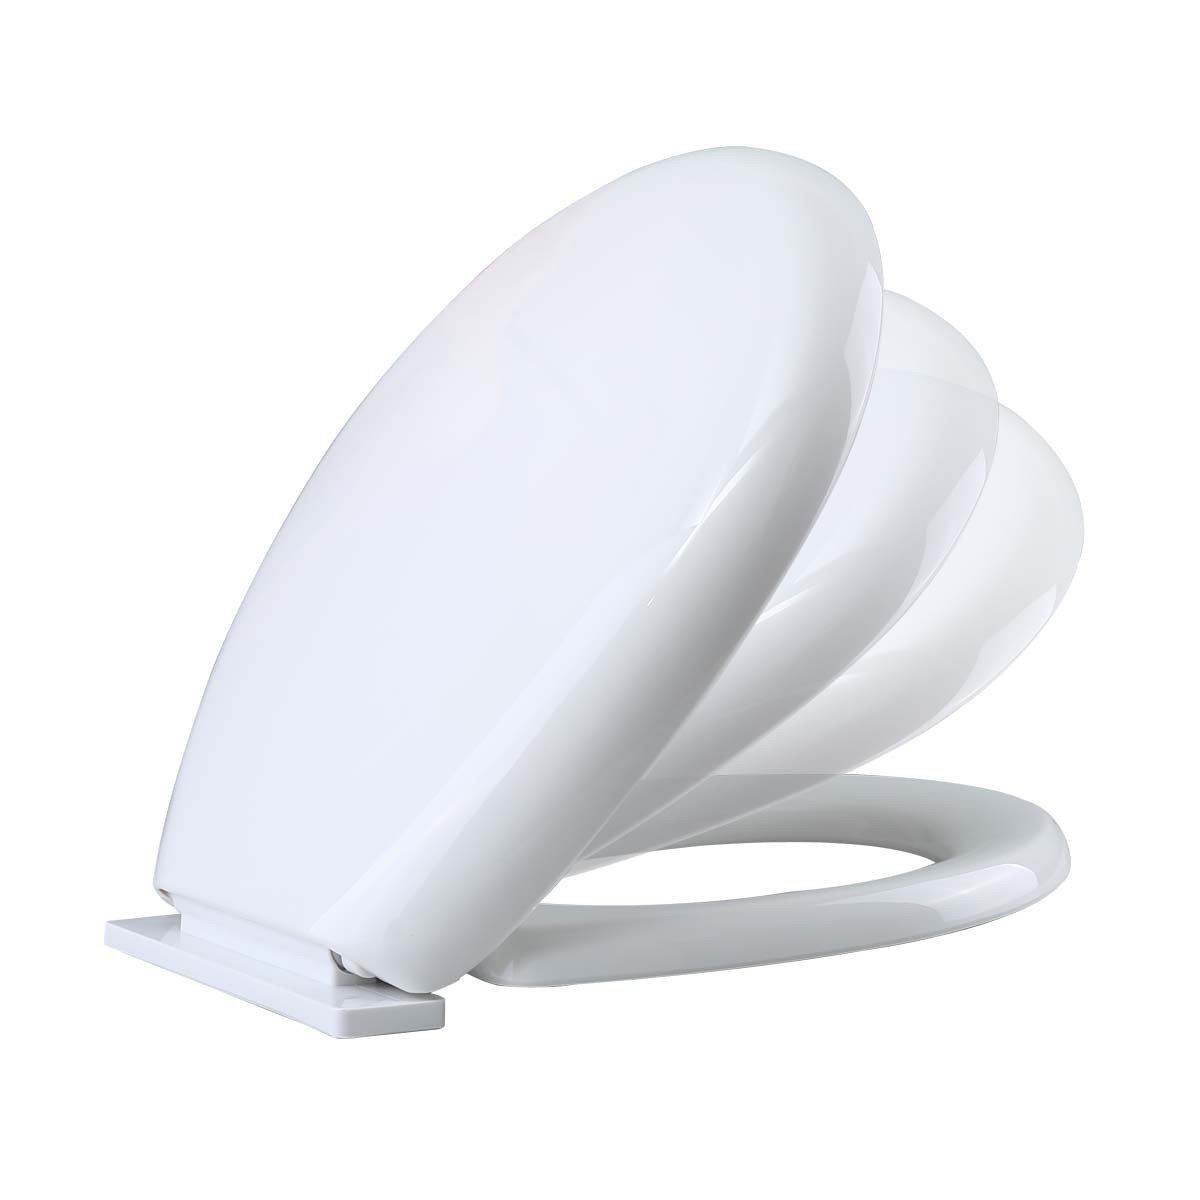 toilet seat no lid. No Slam Toilet Seat Easy Close White Plastic Round Comfortable Ergonomic  Design Slow Closing Lid System Quiet Durable High Impact Resists Staining